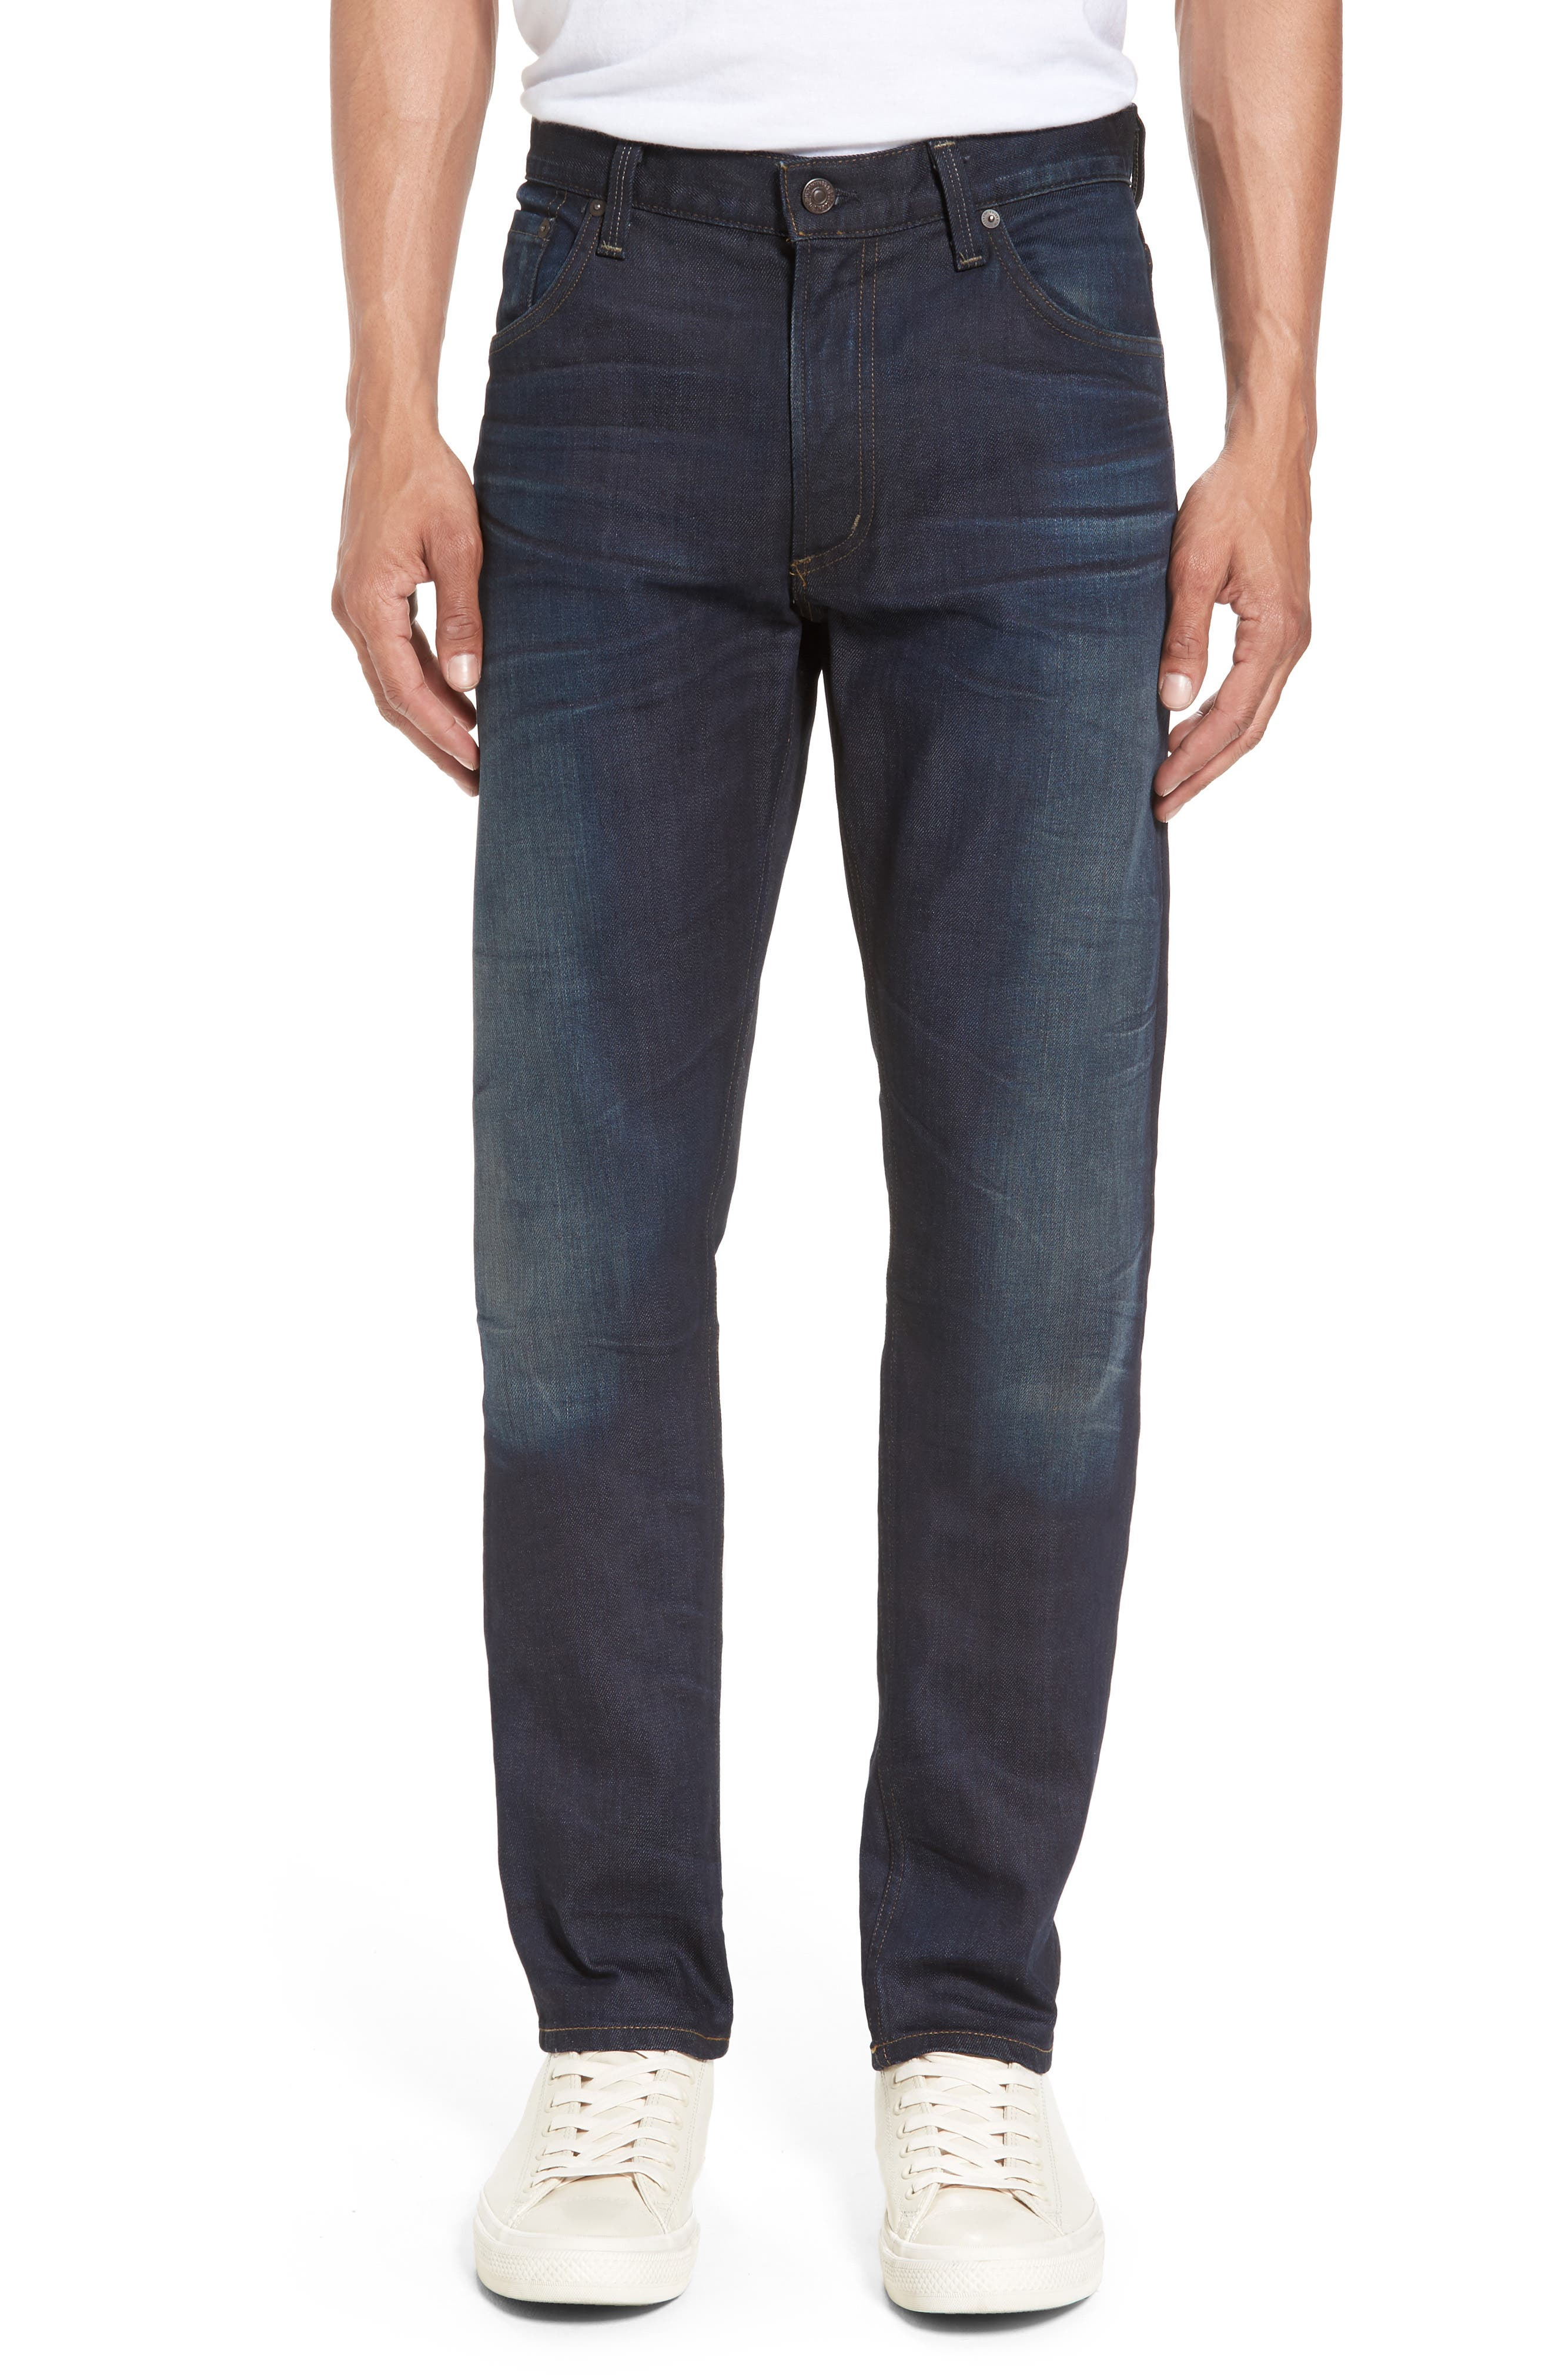 Citizens of Humanity Bowery Slim Fit Jeans (Huron) (Tall)